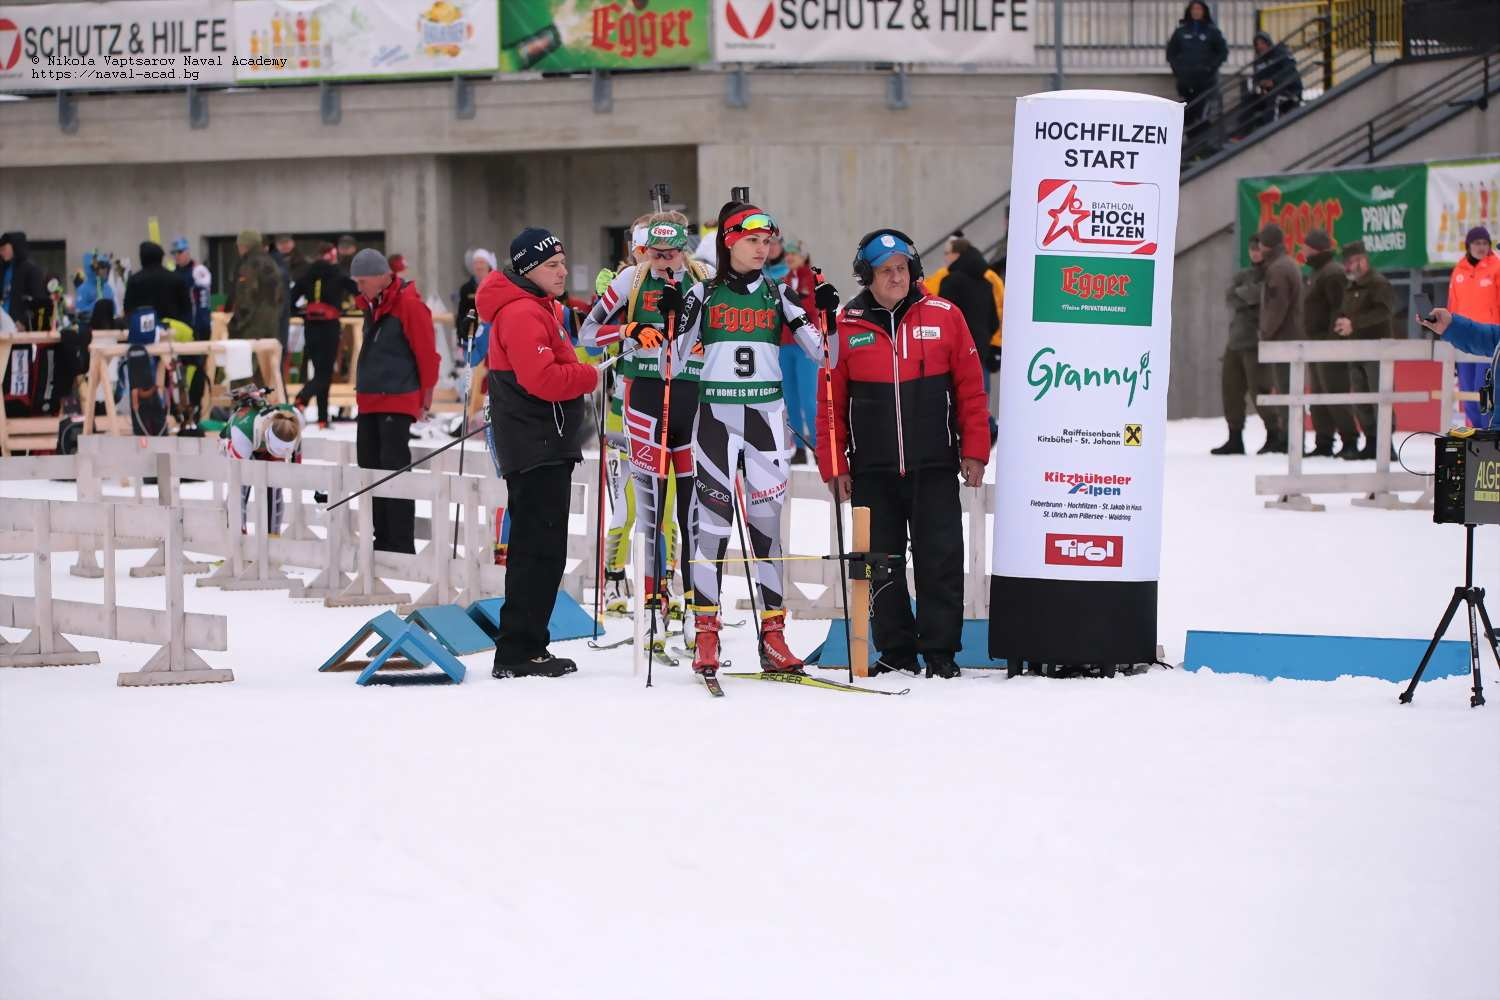 54th WORLD MILITARY SKIING CHAMPIONSHIP